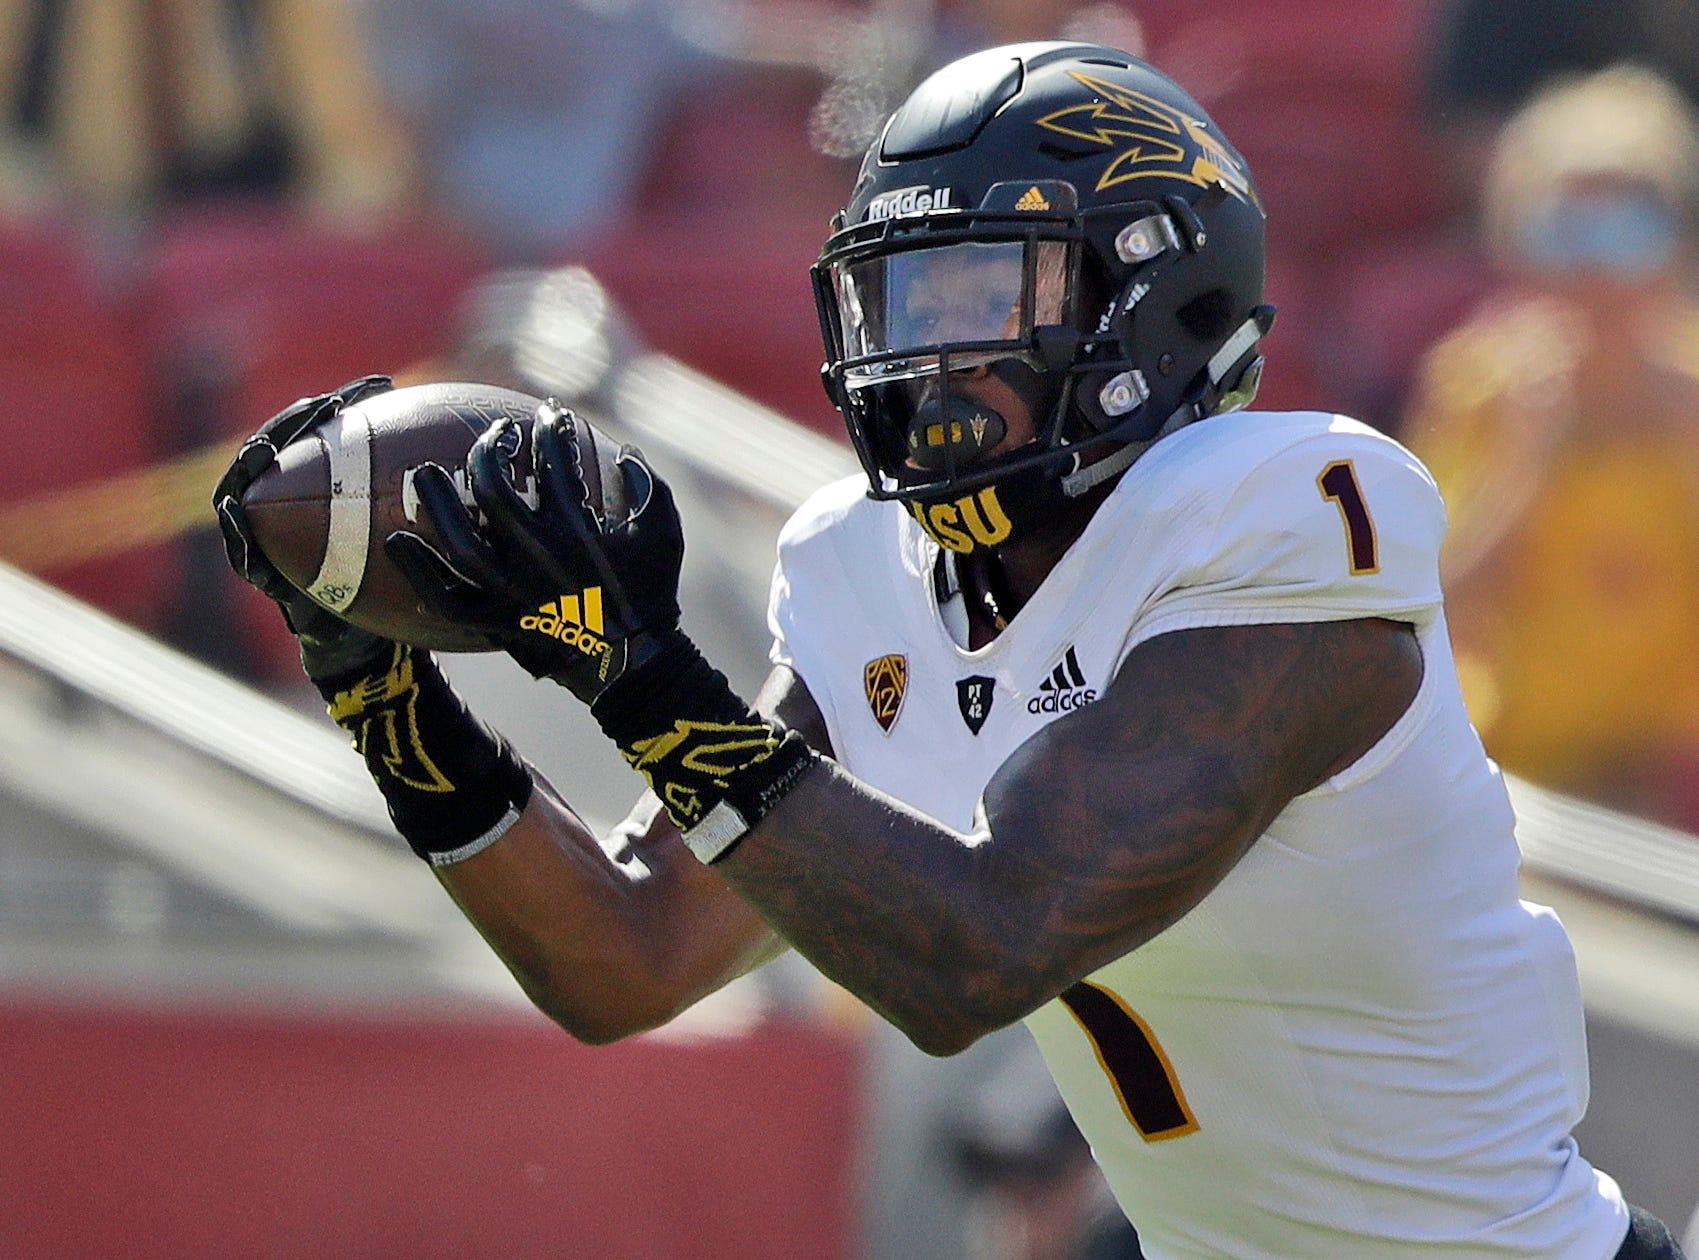 FILE - In this Oct. 27, 2018, file photo, Arizona State wide receiver N'Keal Harry makes a touchdown catch against Southern California during the first half of an NCAA college football game in Los Angeles. Harry announced Monday, Nov. 26, 2018, he will skip his senior season to enter the NFL draft.